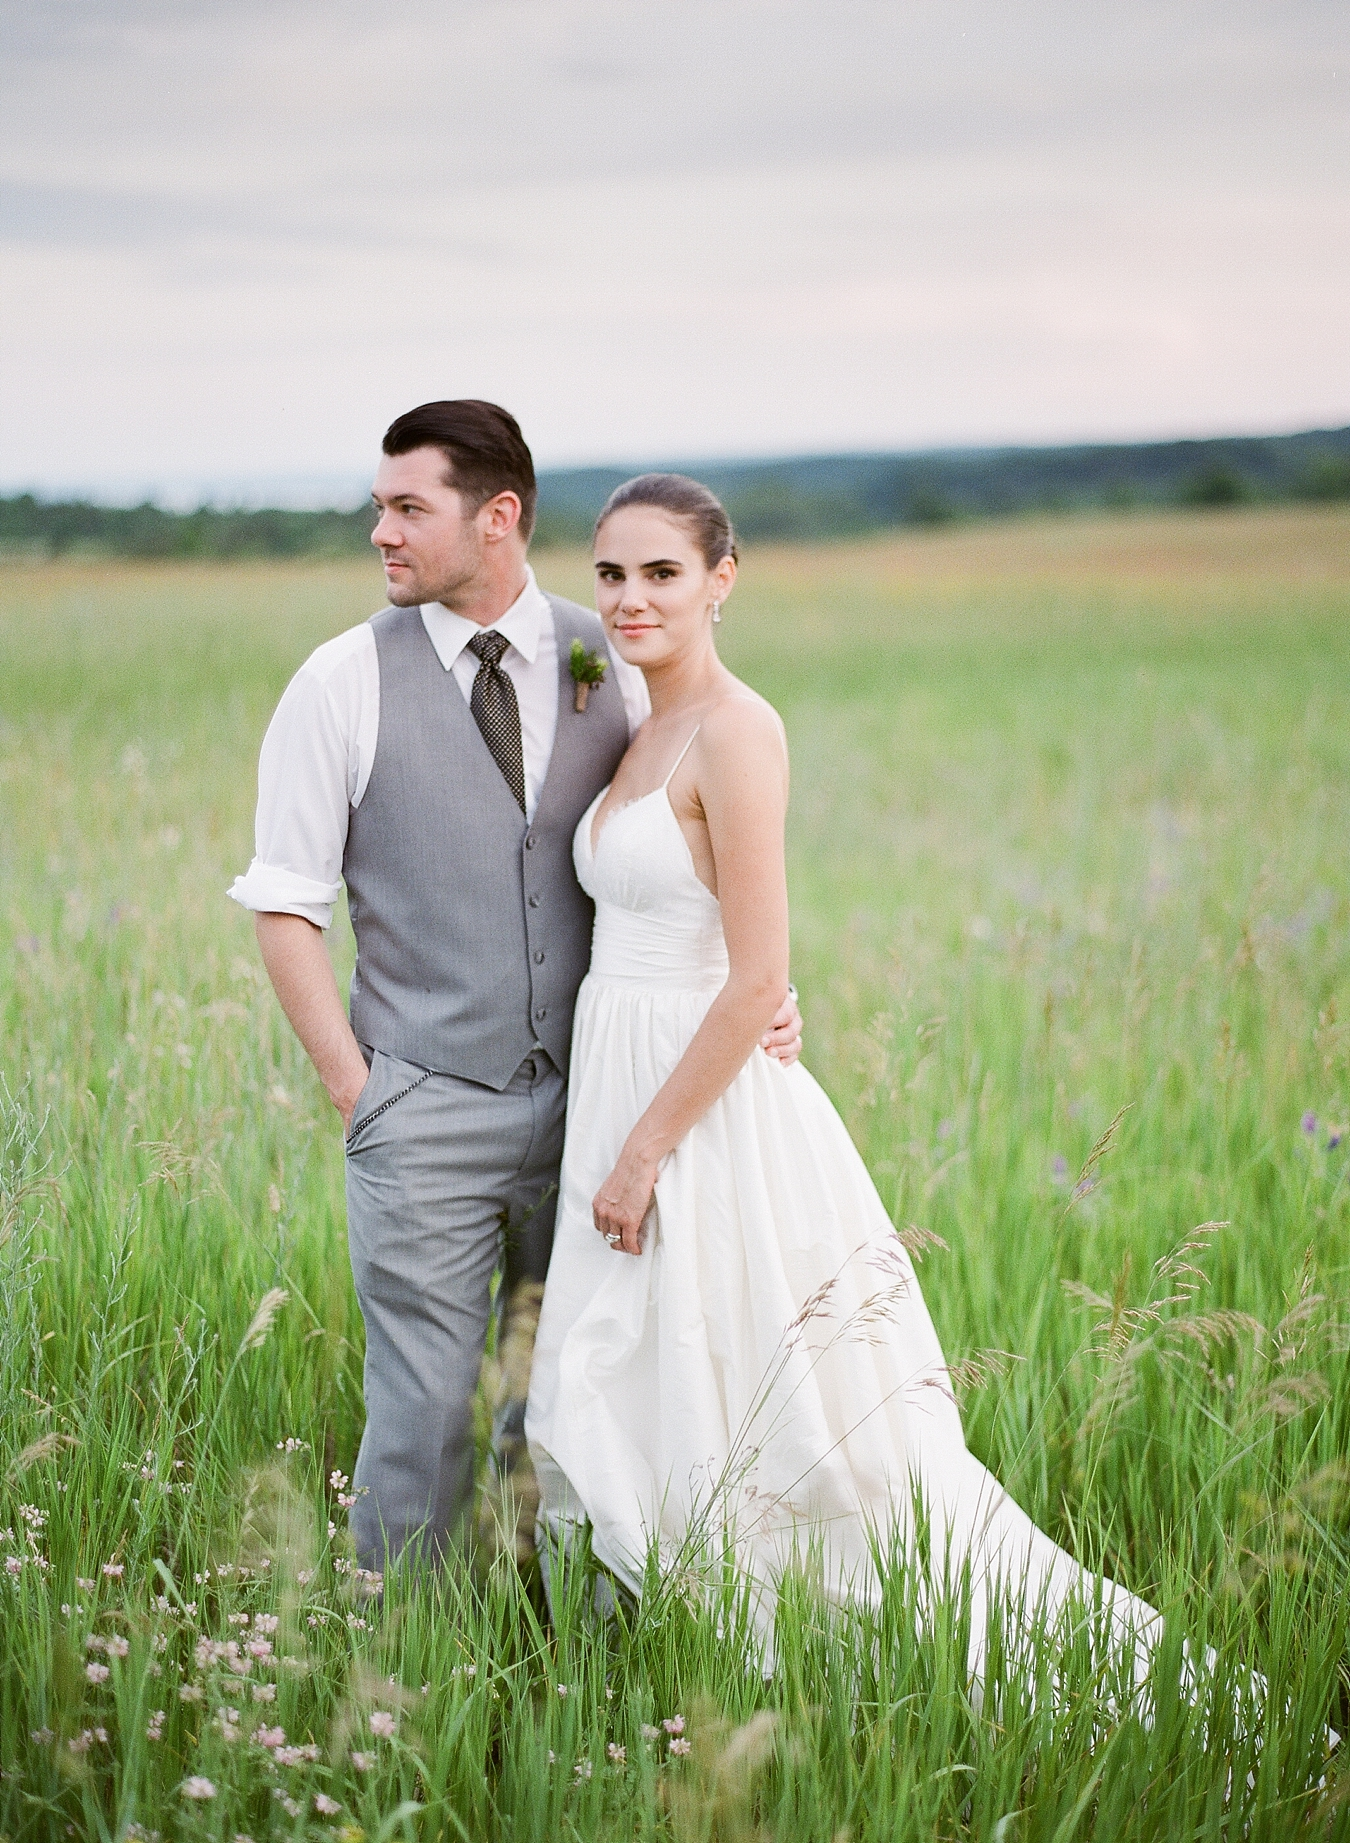 Traverse City Mi Wedding Photography | Cory Weber Photography | Sincerely, Ginger Event Design & Production